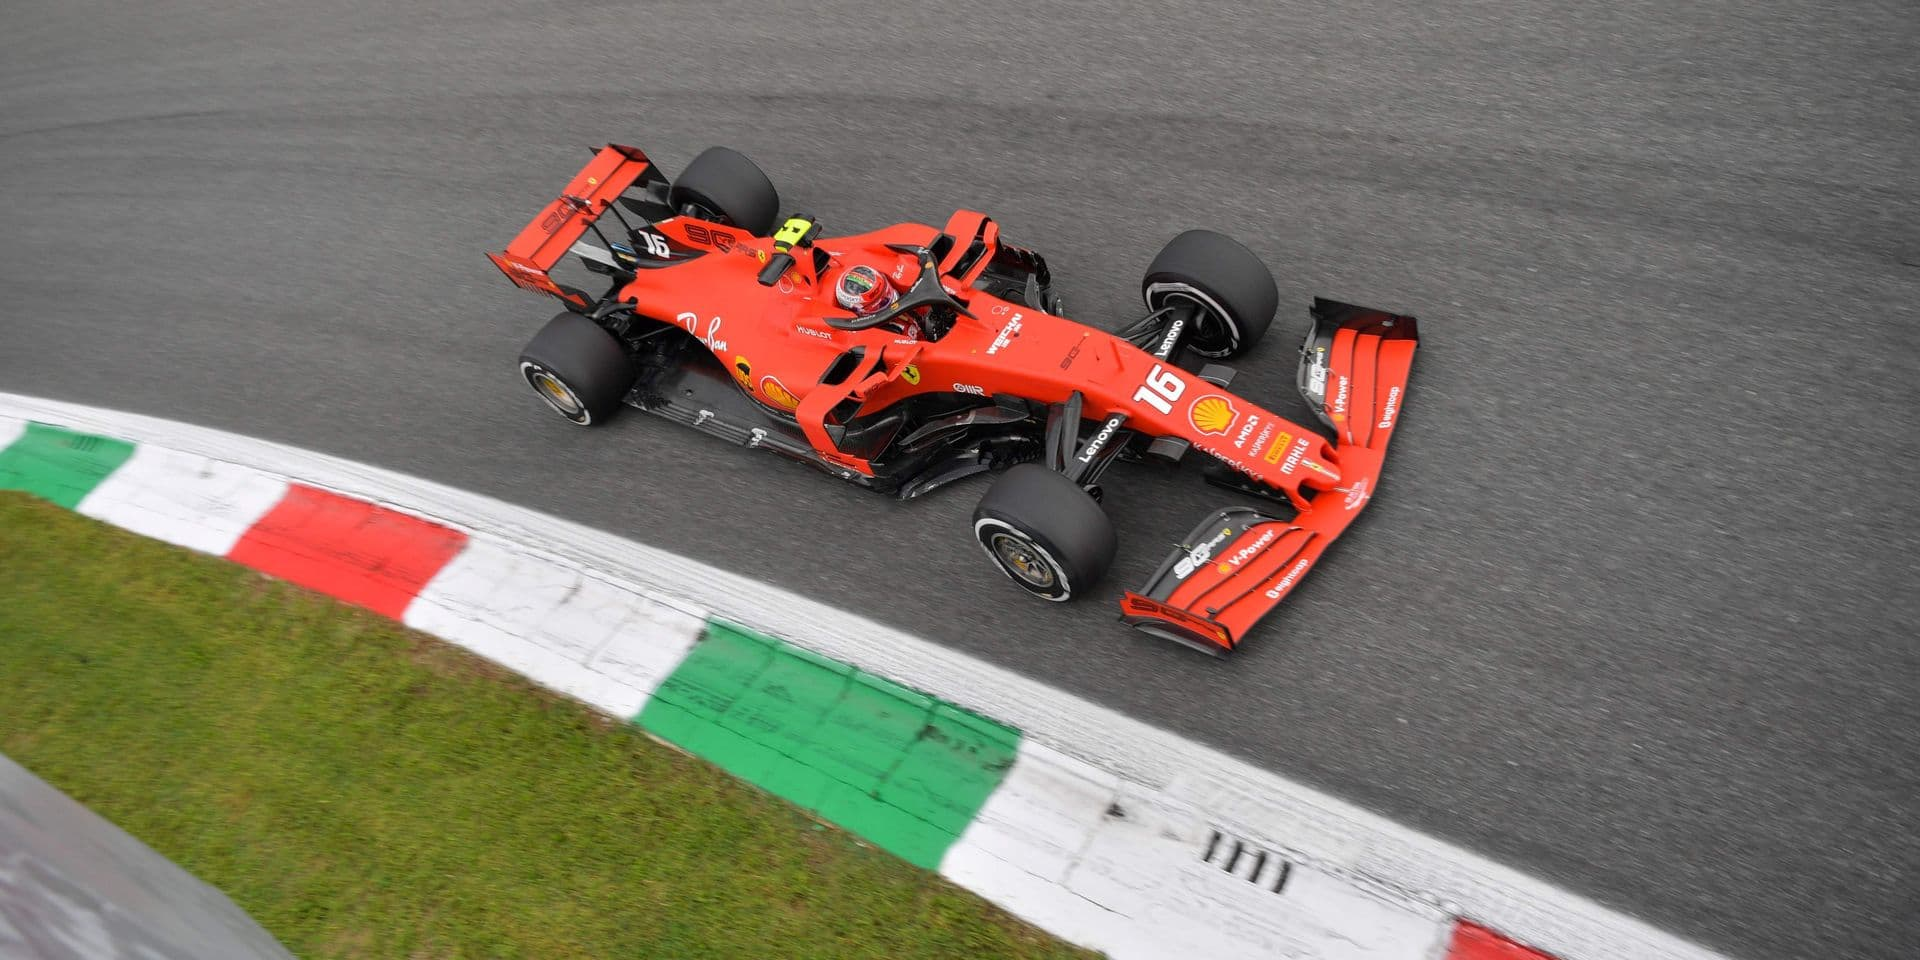 Ferrari's Monegasque driver Charles Leclerc drives during the second practice session at the Autodromo Nazionale circuit in Monza on September 6, 2019 ahead of the Italian Formula One Grand Prix. (Photo by Andrej ISAKOVIC / AFP)